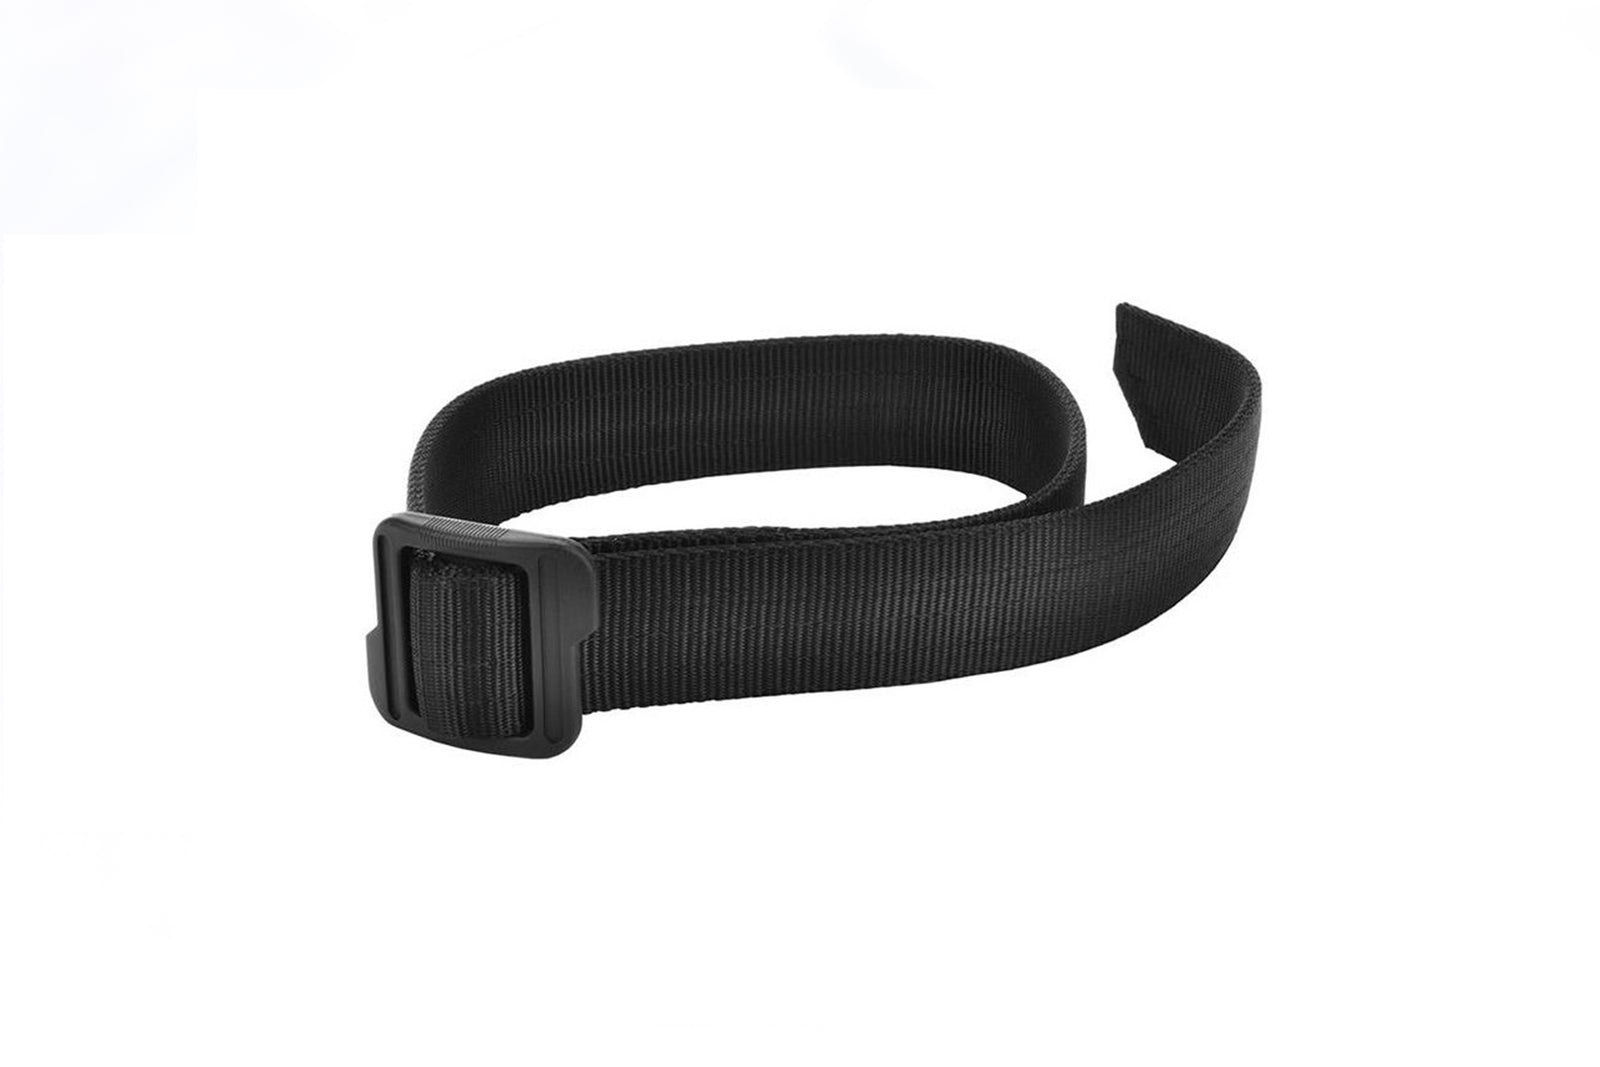 Cytac Nylon Tactical Belt w/ Polymer Slide Adjuster